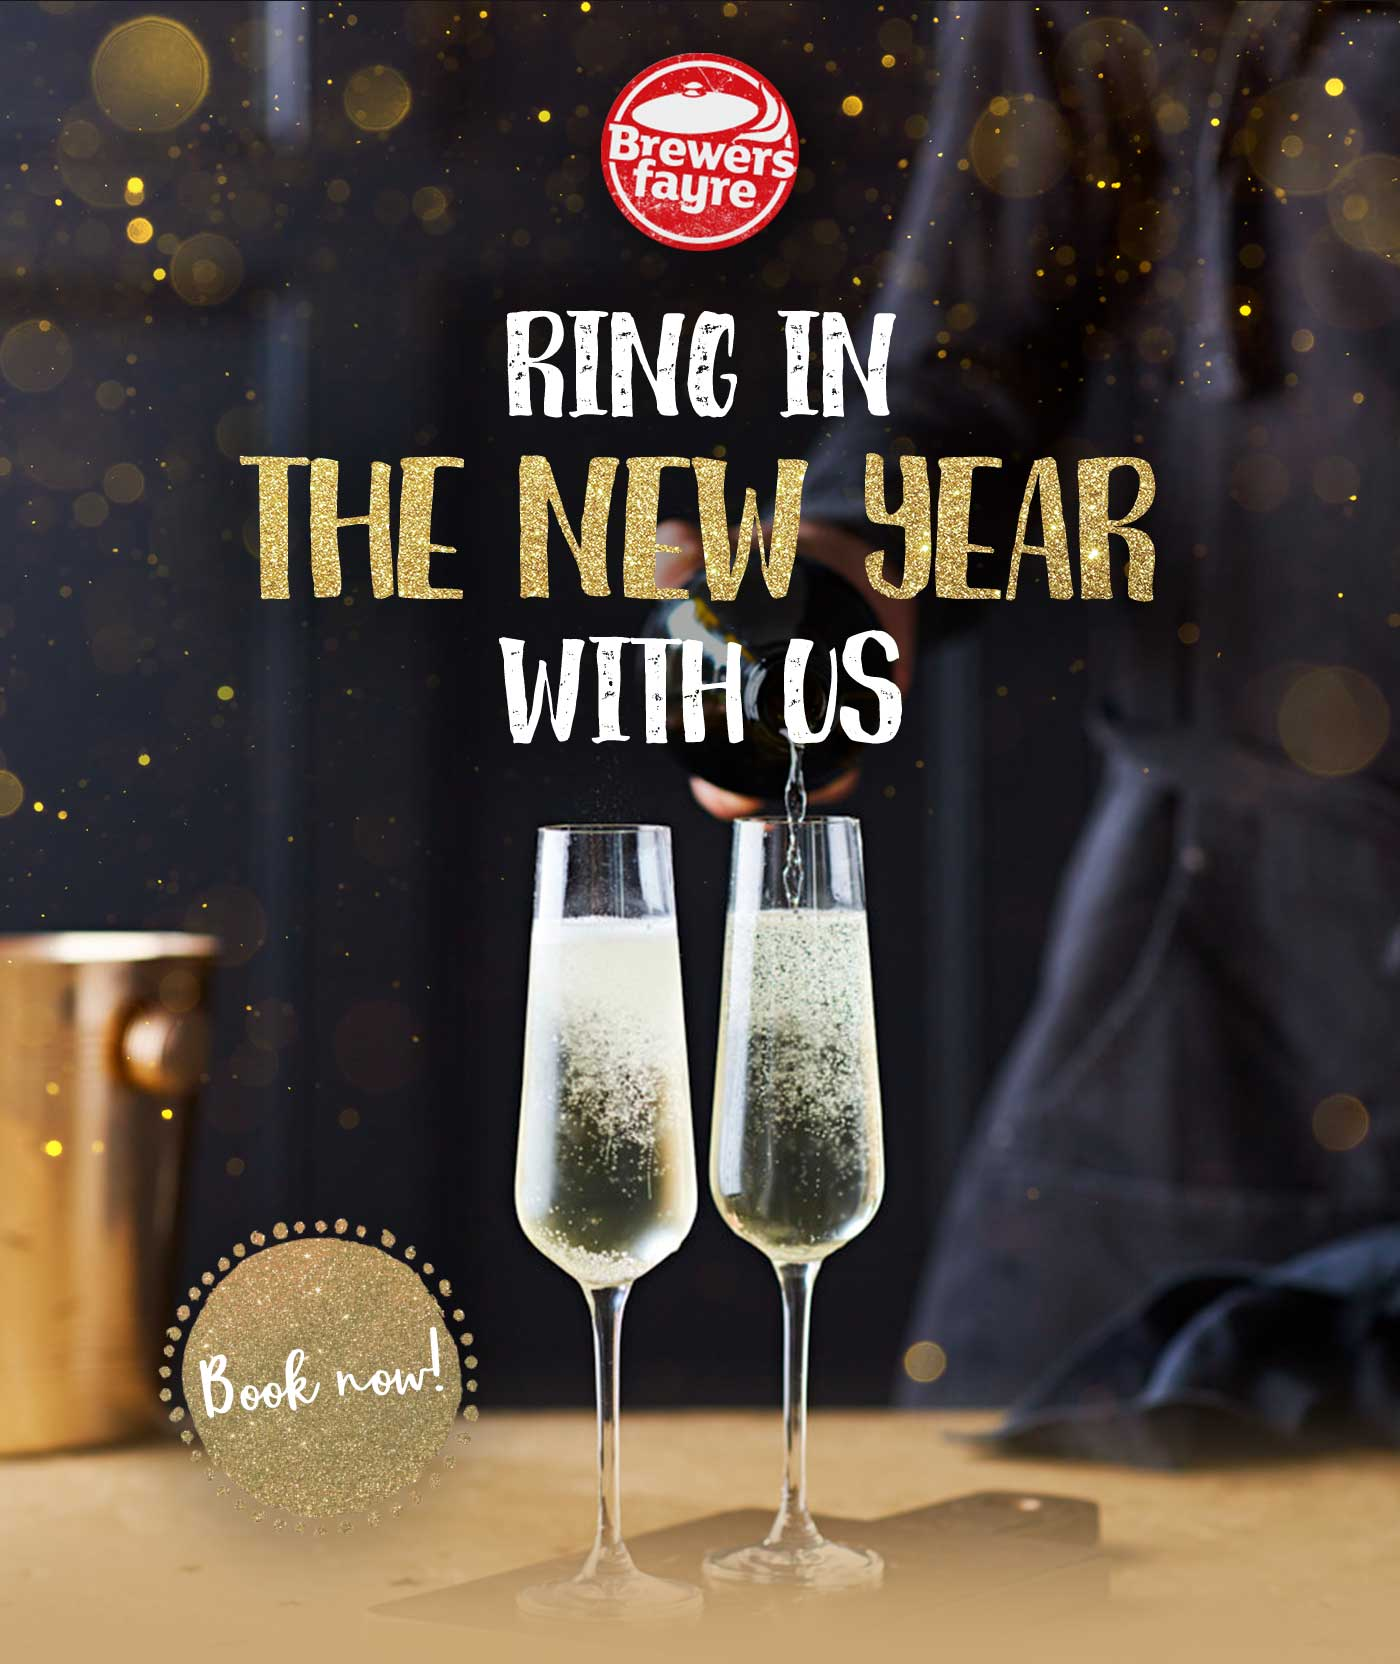 RING IN THE NEW YEAR WITH US